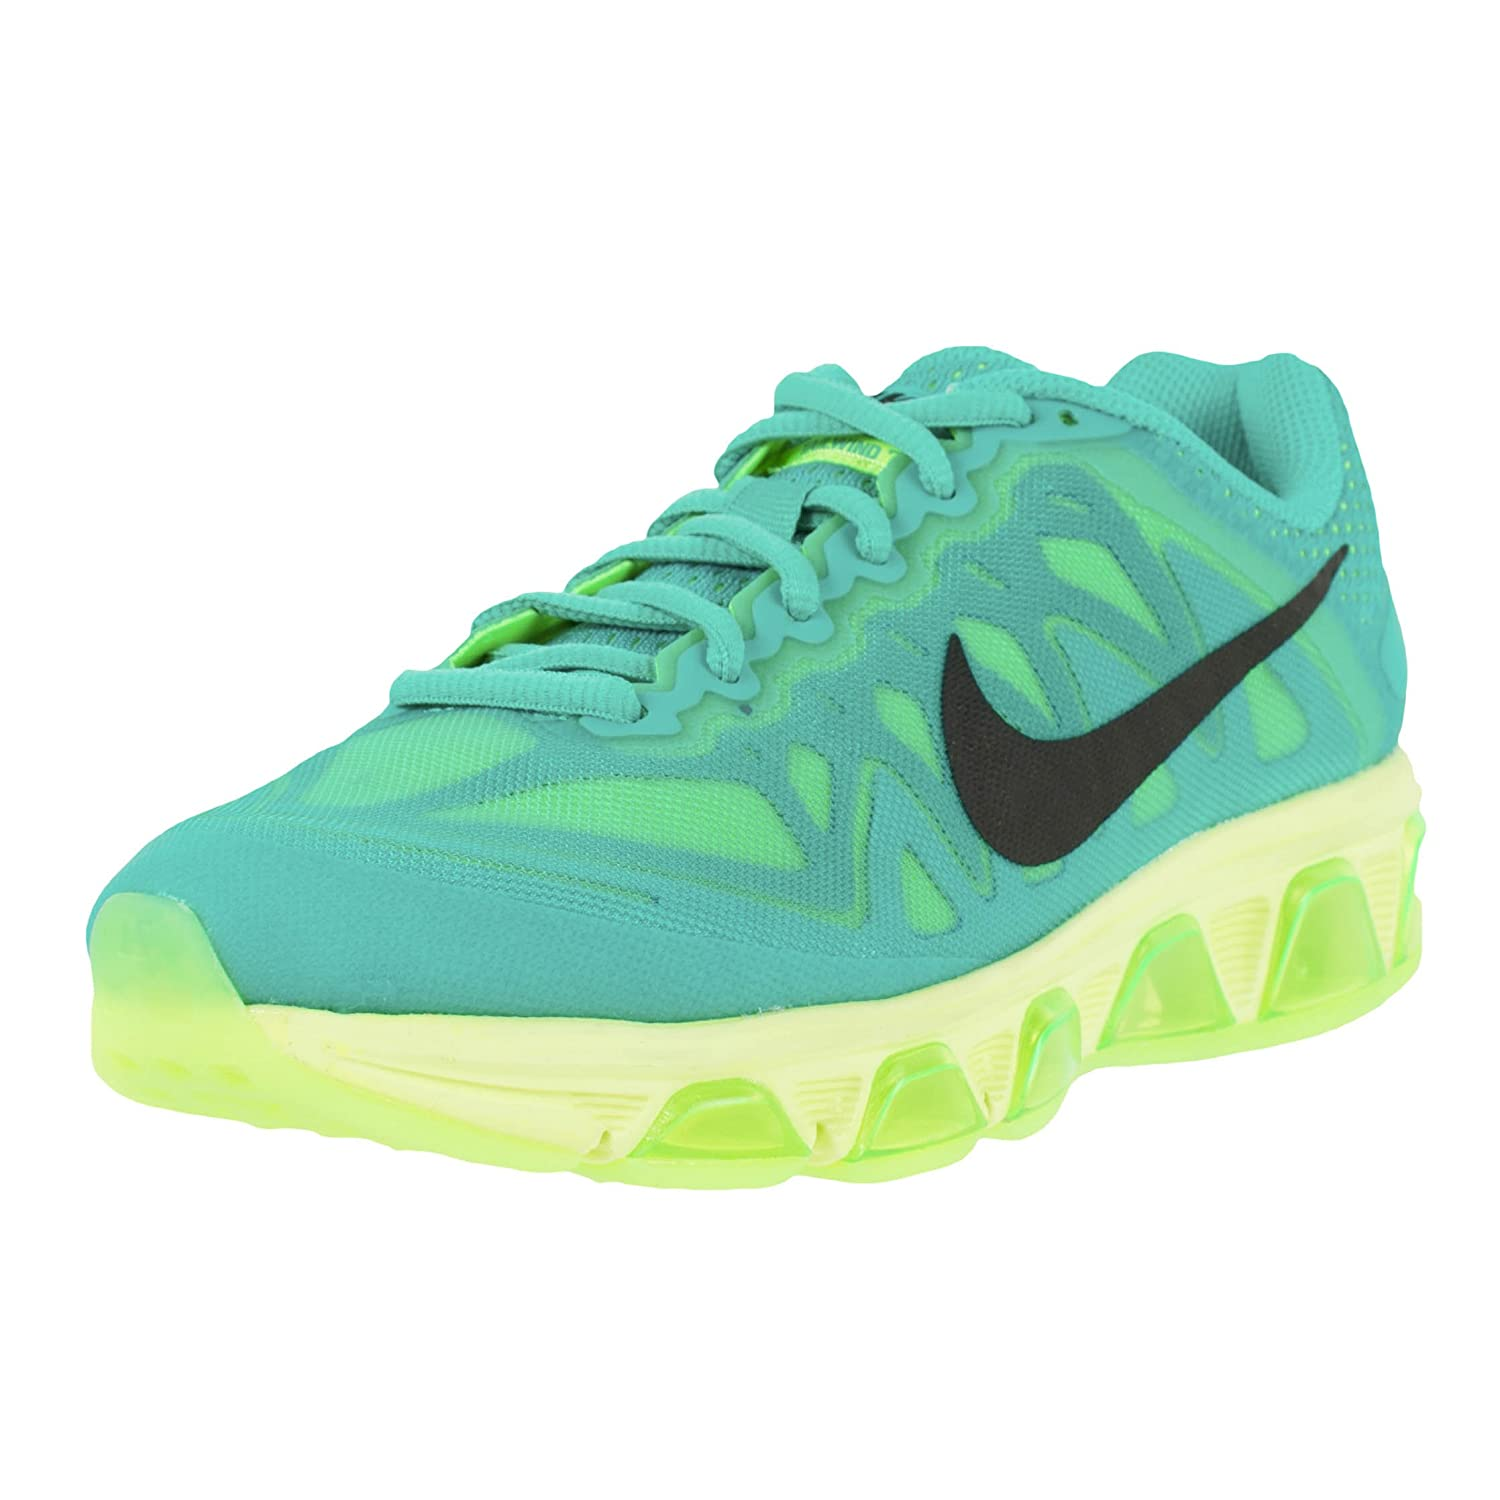 new concept 48eed 9f2ad Nike Womens AIR MAX Tailwind 7 Running Shoes Light Retro Black Lime  683635-400 (6 US)  Amazon.in  Shoes   Handbags